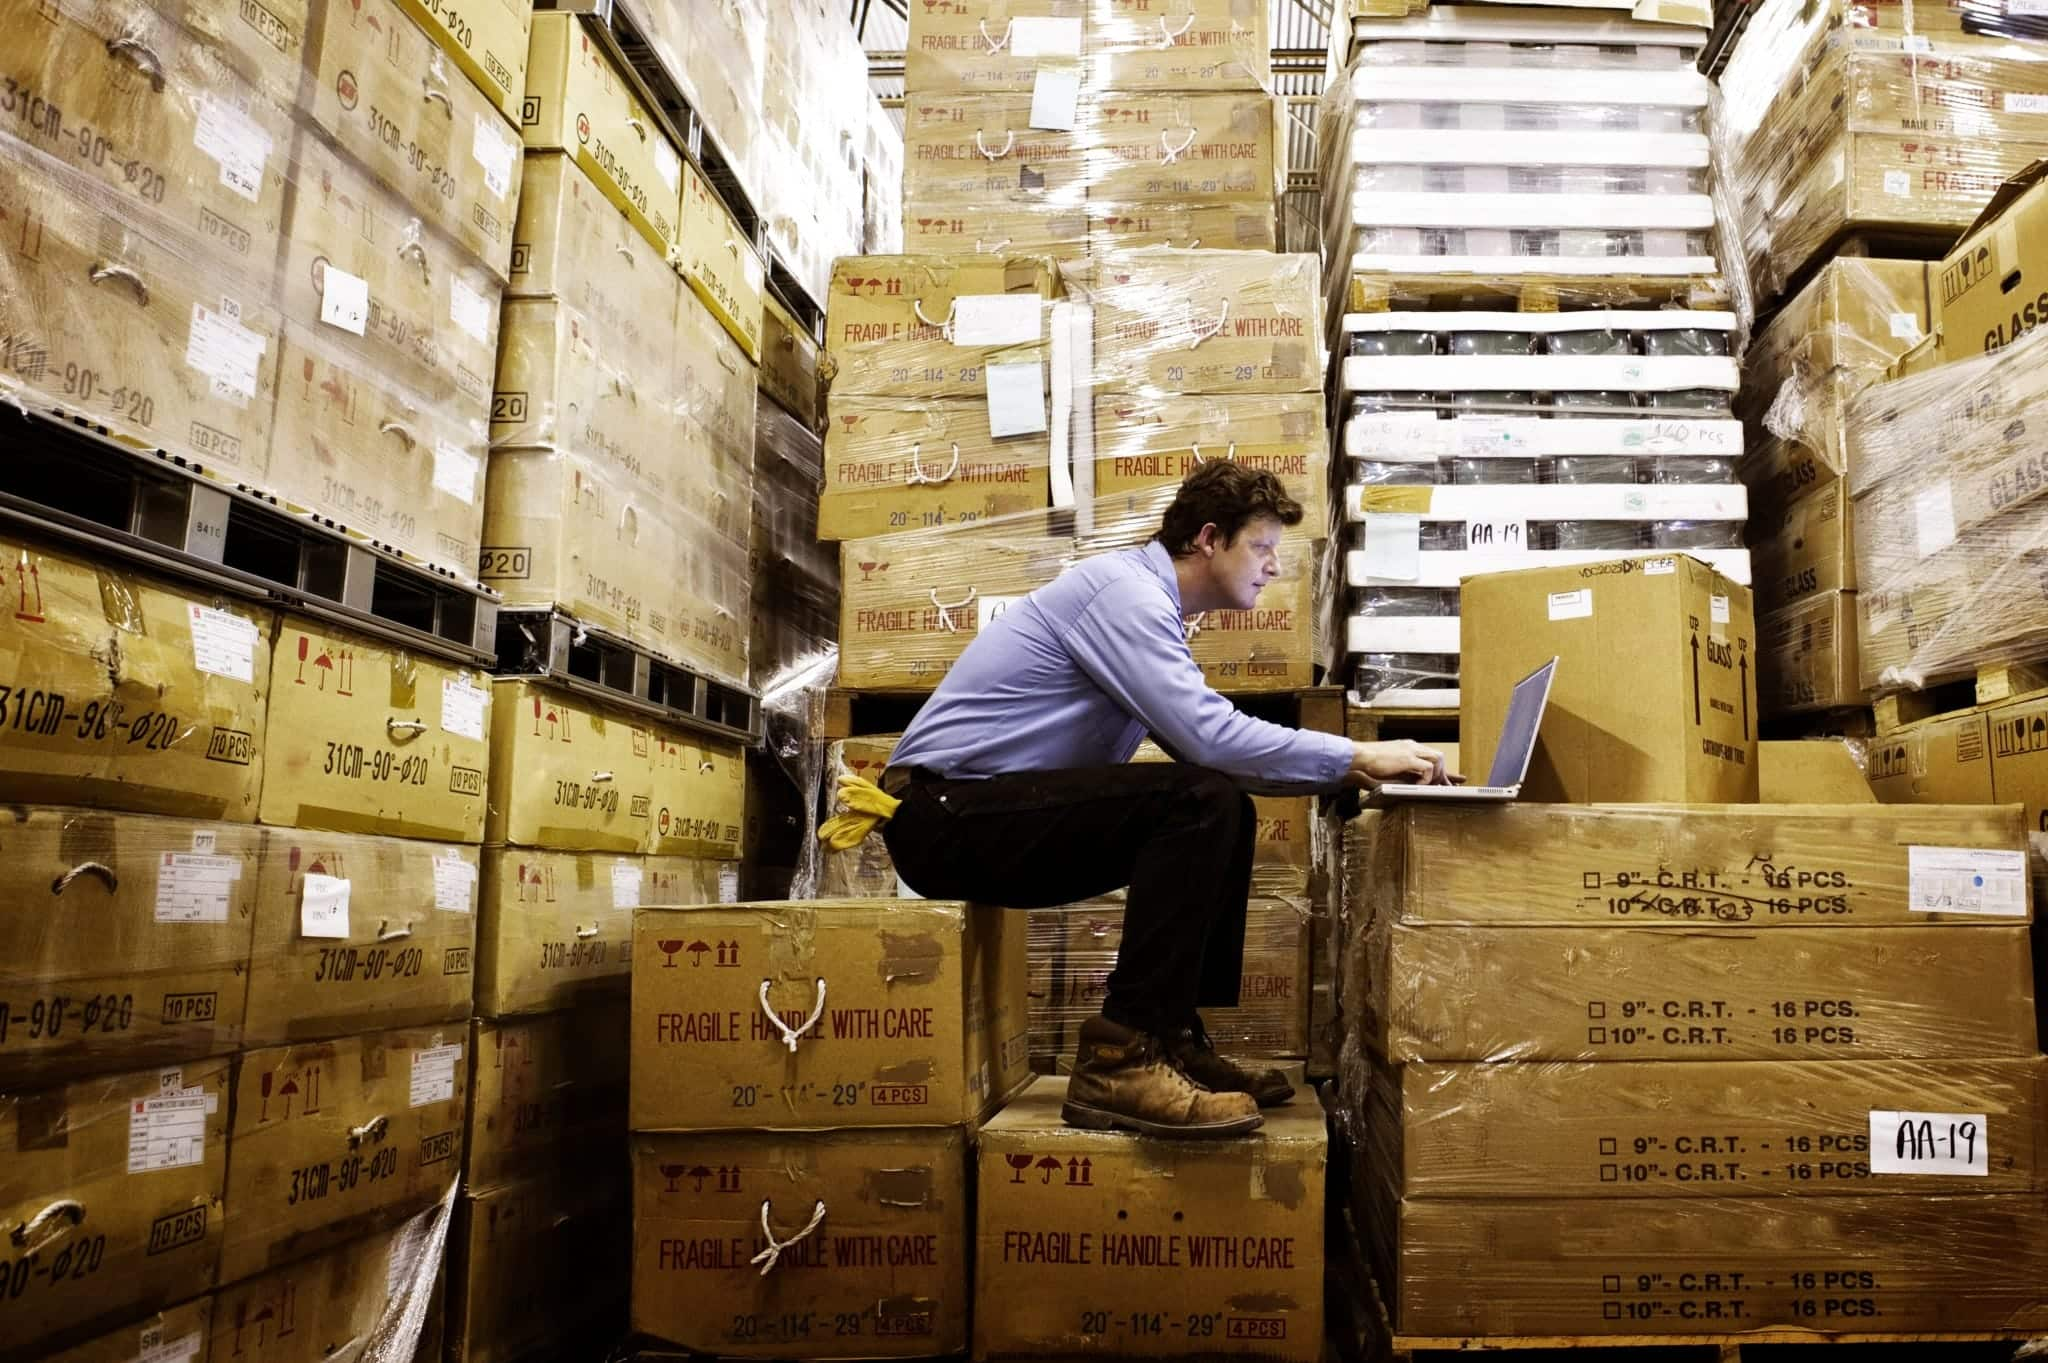 A man takes inventory while sitting on boxes in a warehouse.